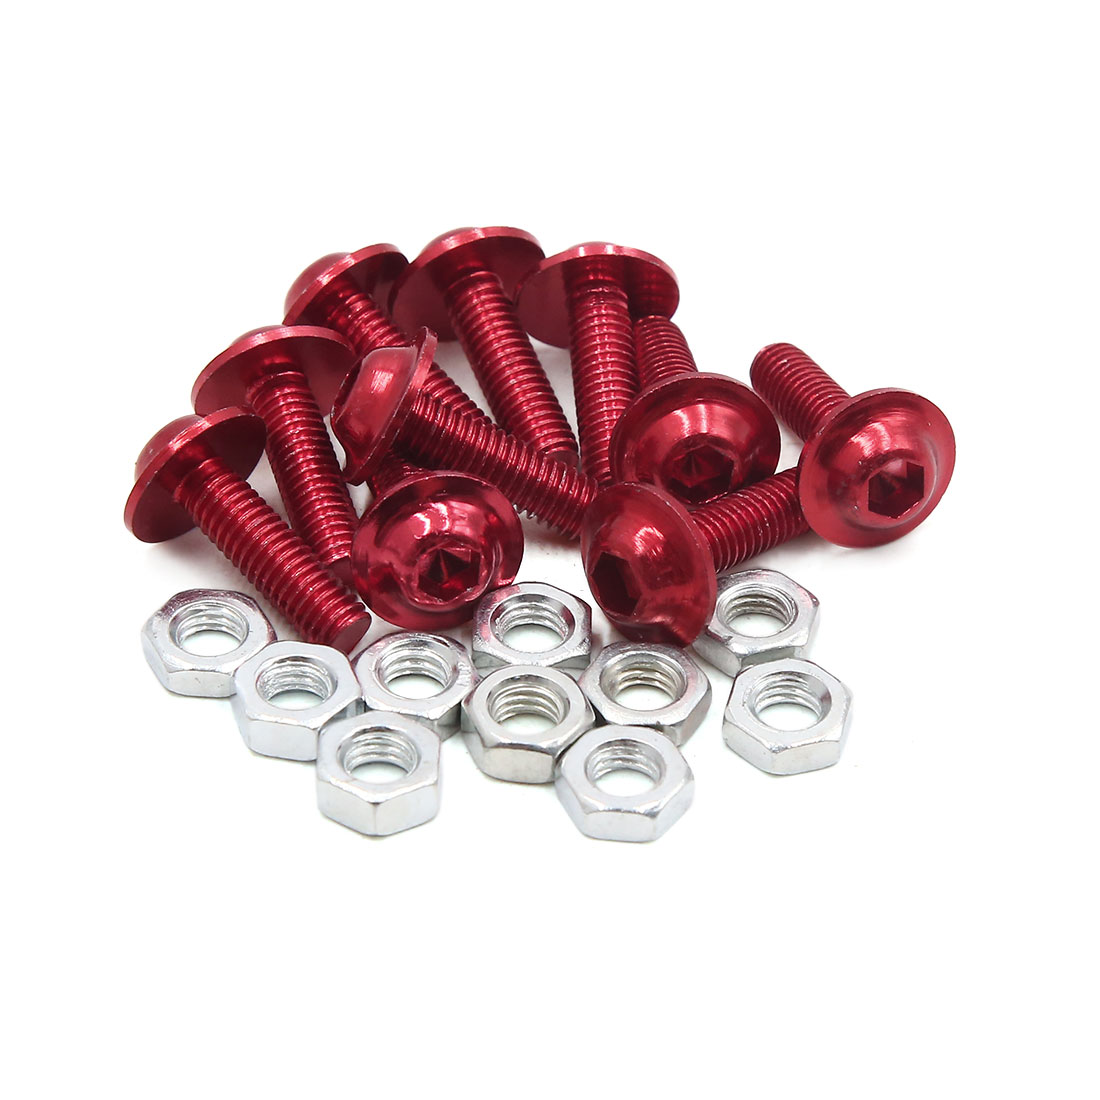 10pcs M6 Red Aluminum Alloy Hex Socket Head Motorcycle Fairing Bolts Screws Nuts